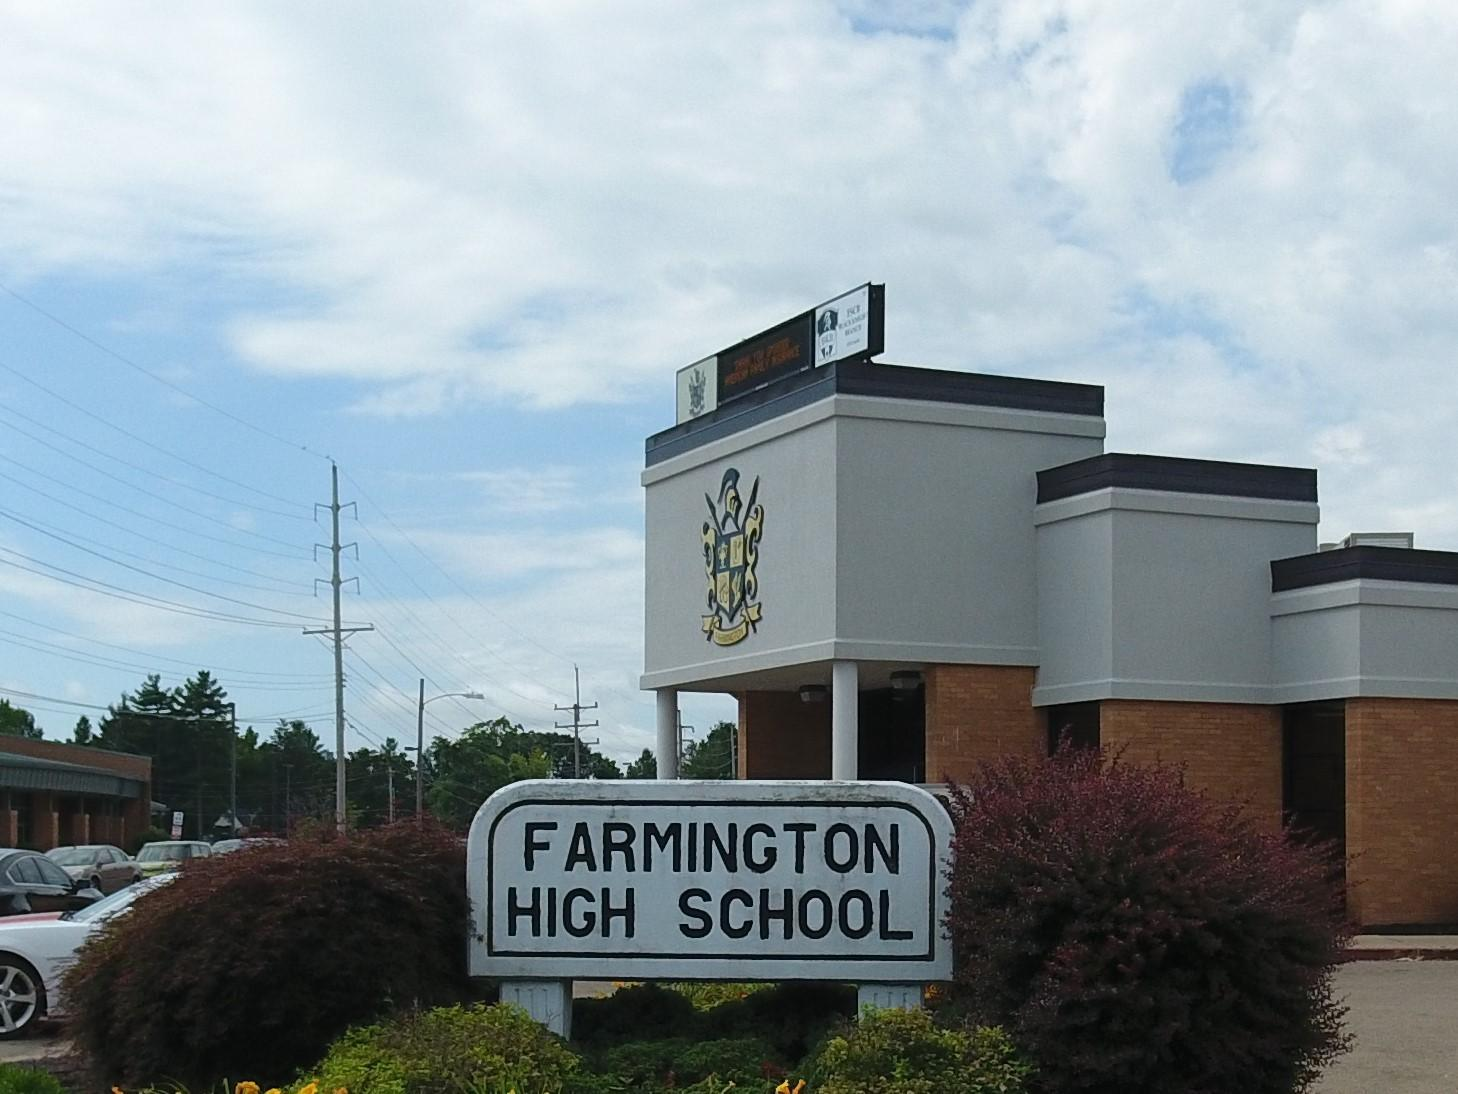 Farmington High School Main Entrance